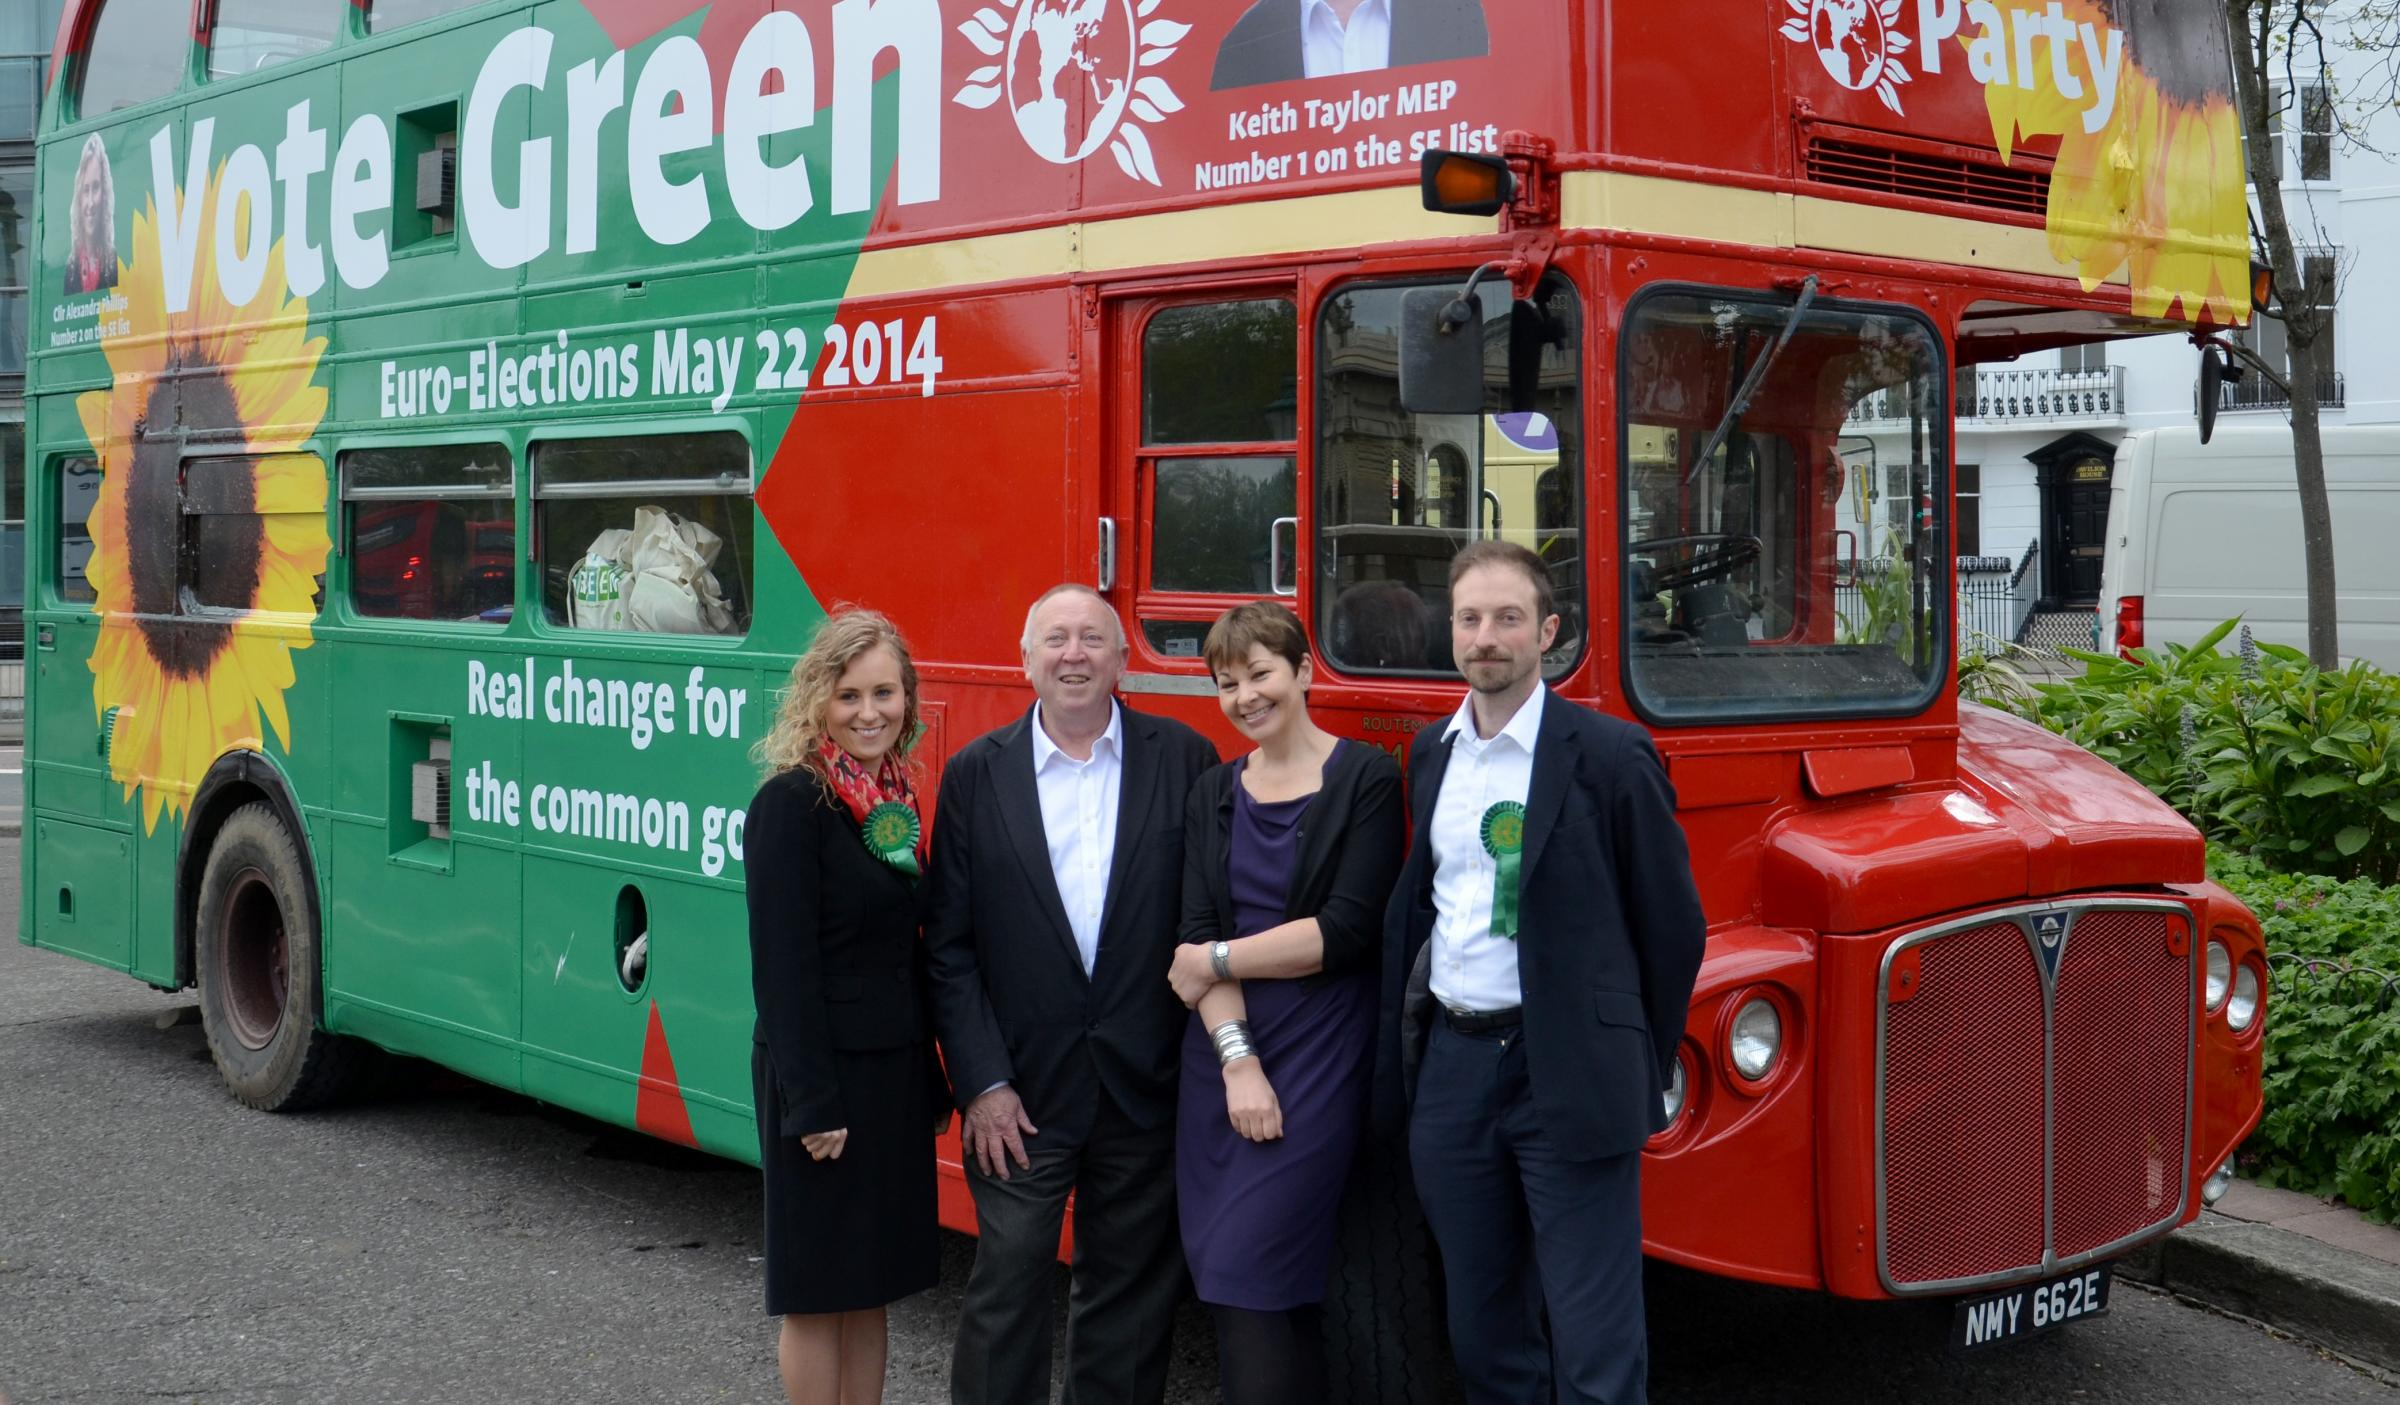 From left, Cllr Alexandra Phillips, Keith Taylor MEP, Caroline Lucas MP and Cllr Jonathan Essex who will be campaigning to see the Green Party succeed in Europe